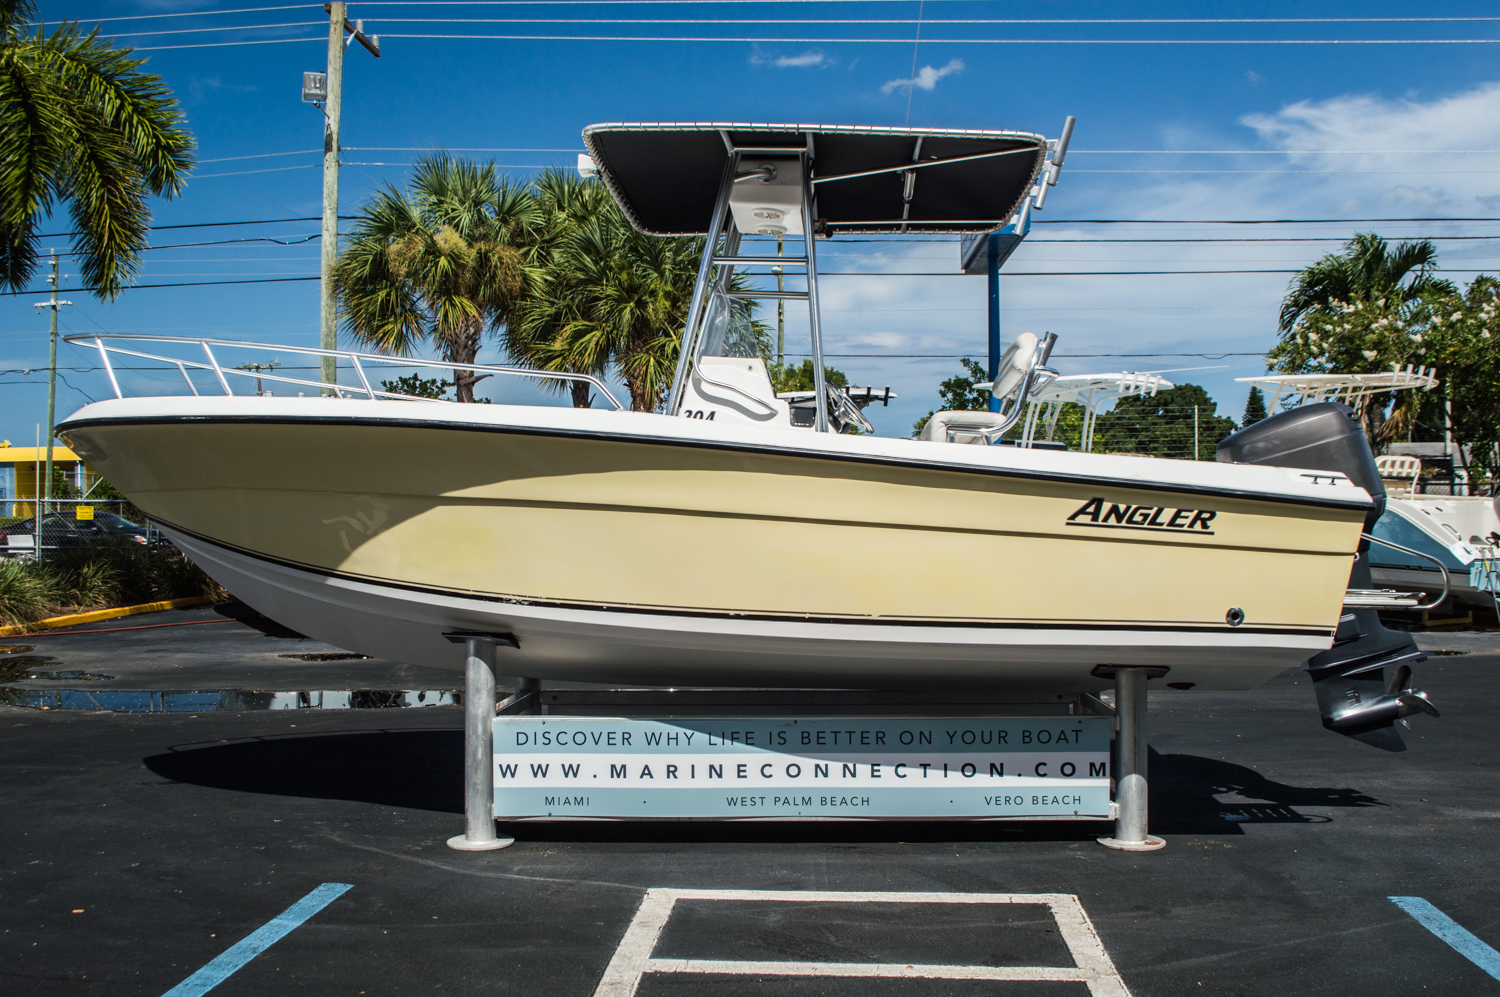 Thumbnail 4 for Used 2002 Angler 204 CC Center Console boat for sale in West Palm Beach, FL